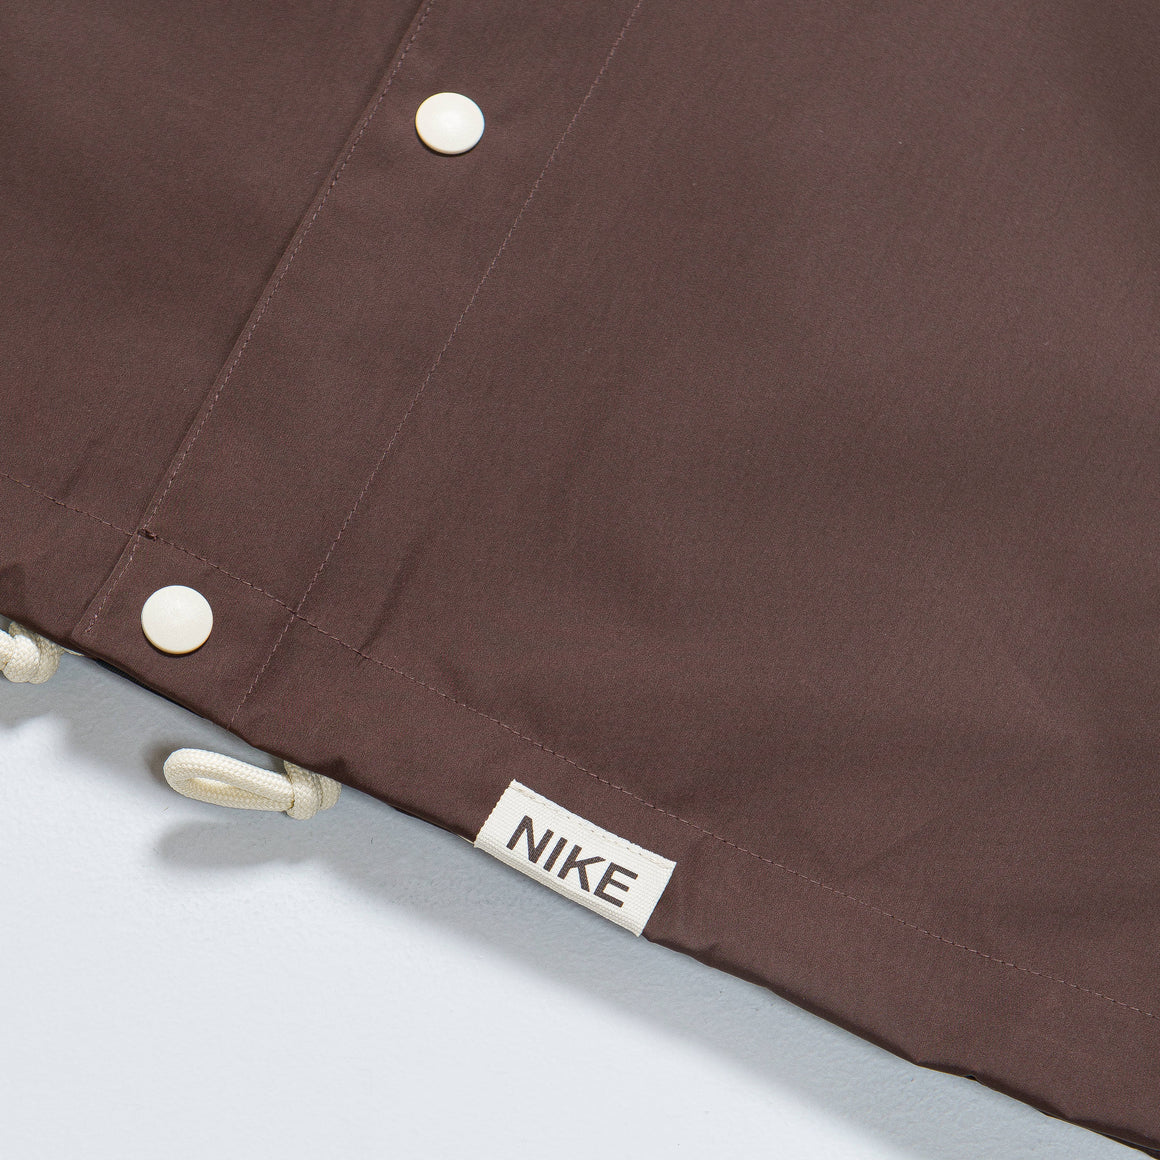 Nike - NRG Coaches Jacket CL - Baroque Brown/Mahogany - Up There